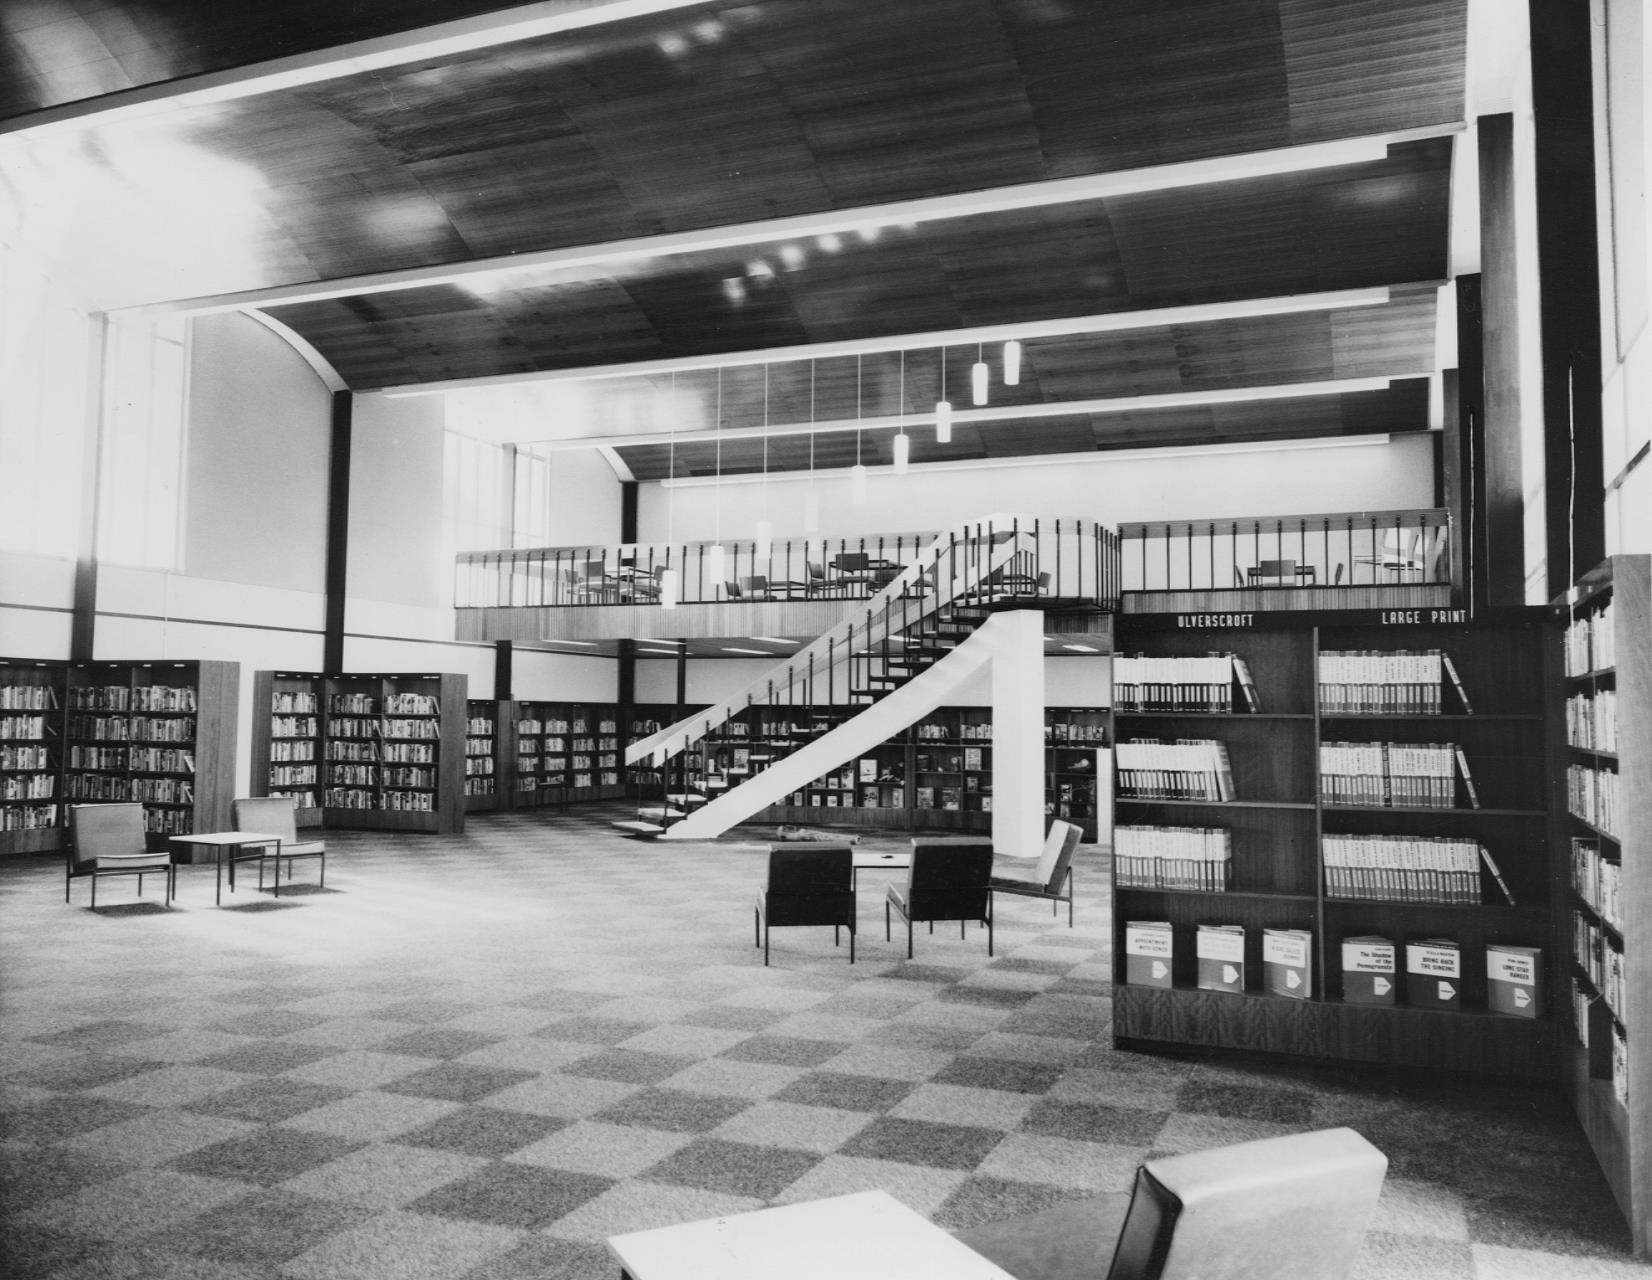 Library remains popular after 50 years of service